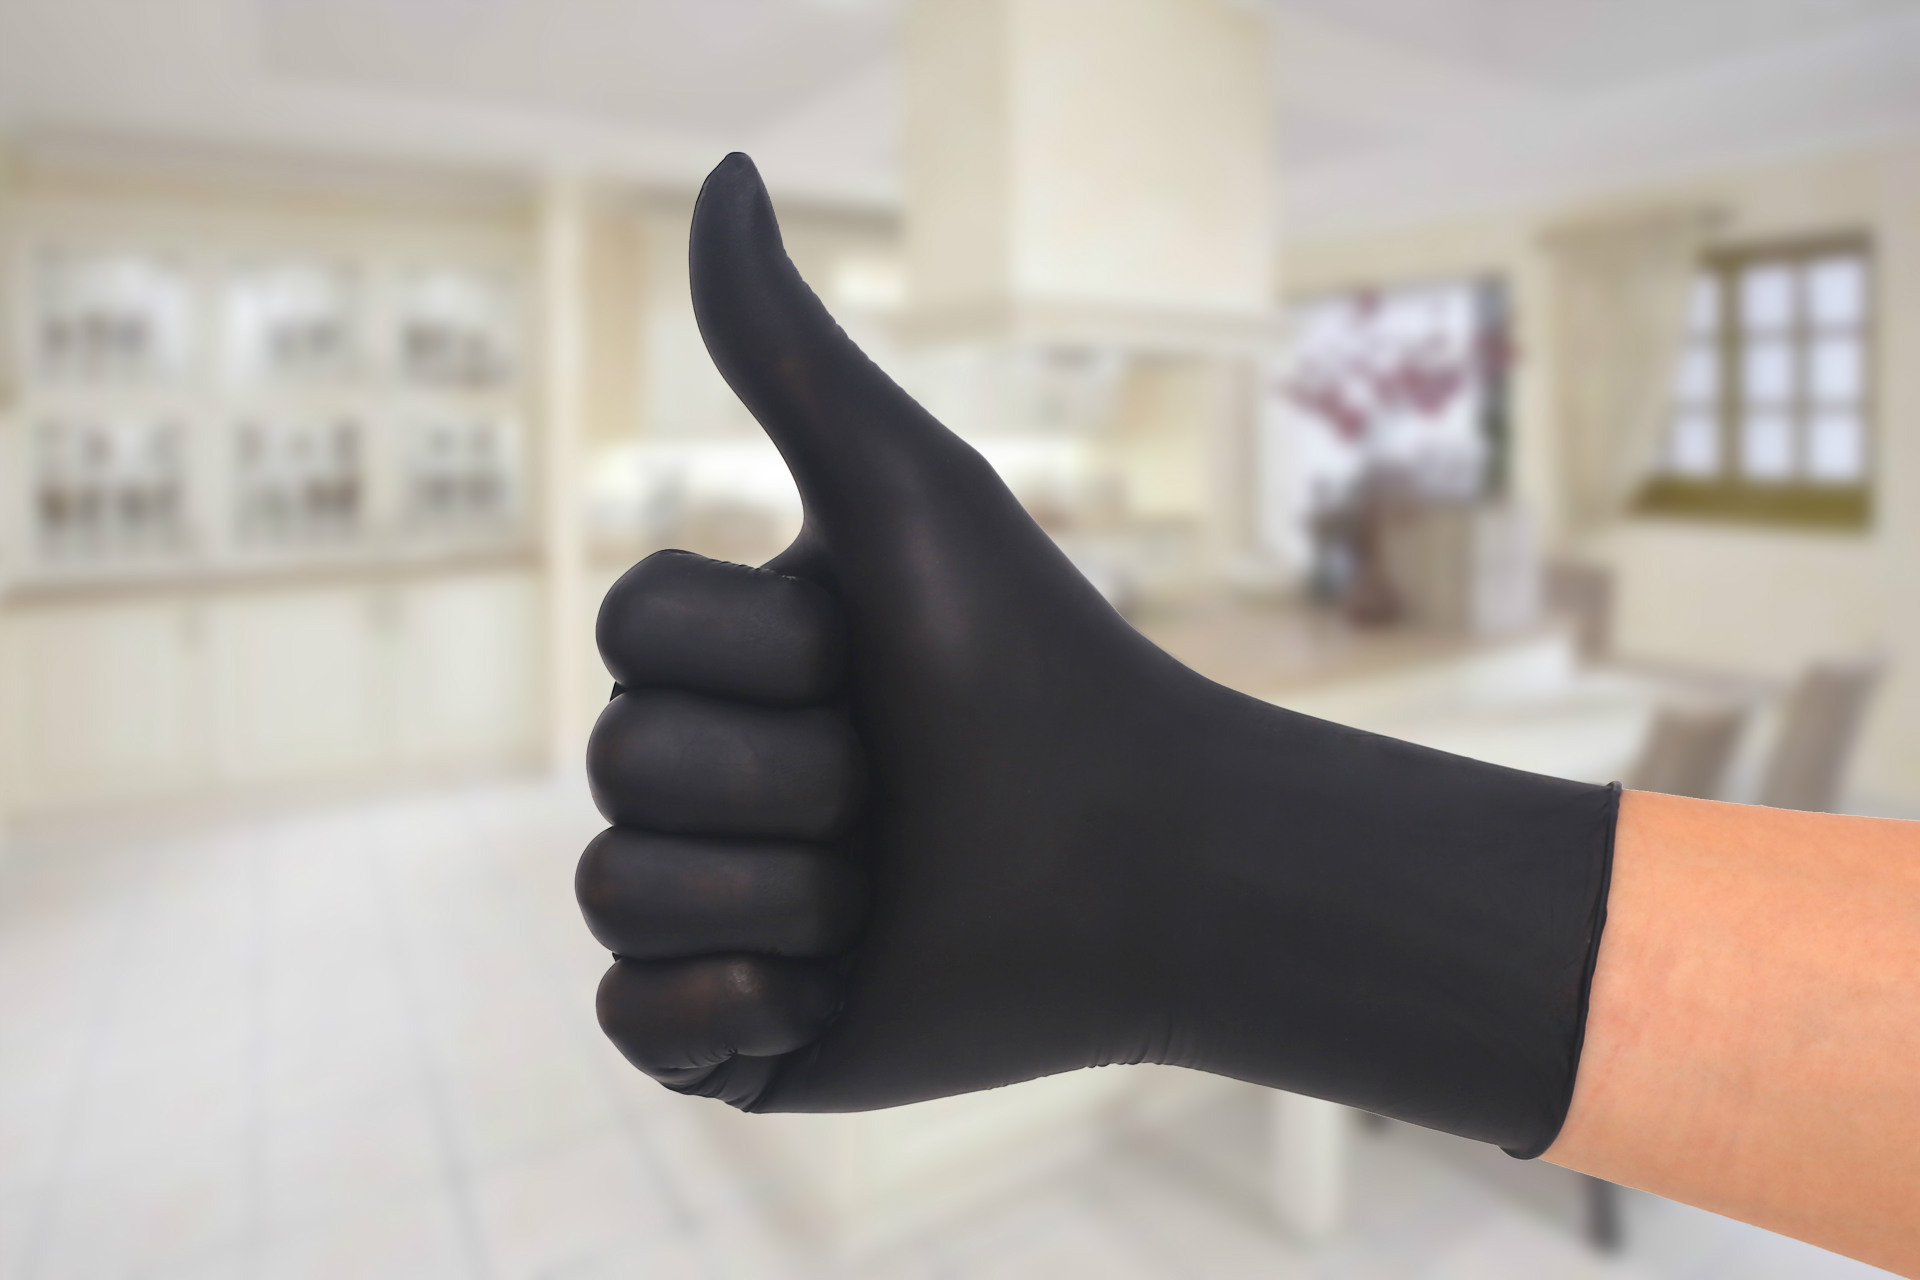 Hot 100pcs/ Pack Latex High Elasticity Black Inspection For Protective Surgical Gloves Anti Virus Influenza And Bacteria And Oil